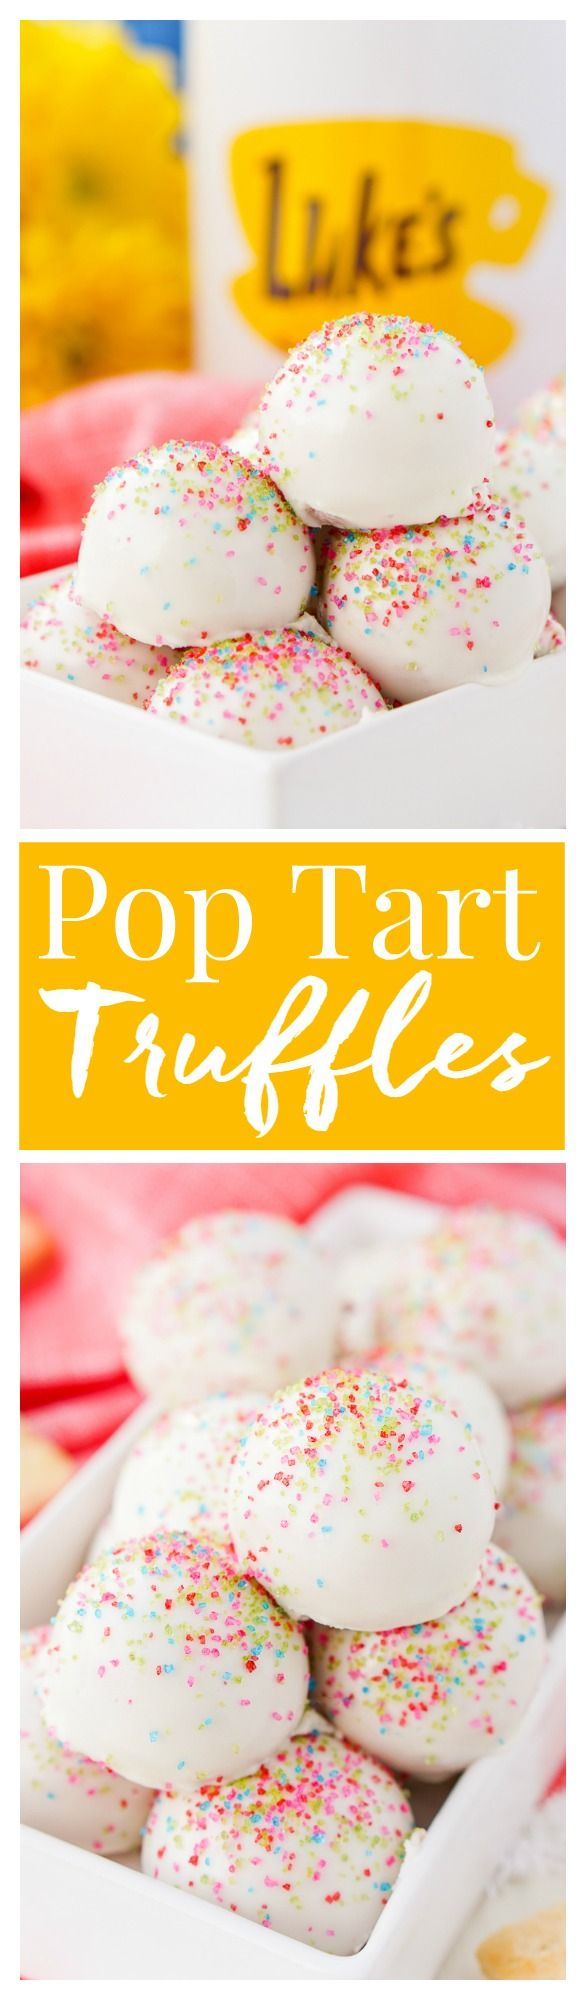 These Gilmore Girls Pop Tart Truffles are something Lorelei would definitely have whipped up for one of Rory's Bake Sales, and you should whip them up for your A Year In The Life Revival party!